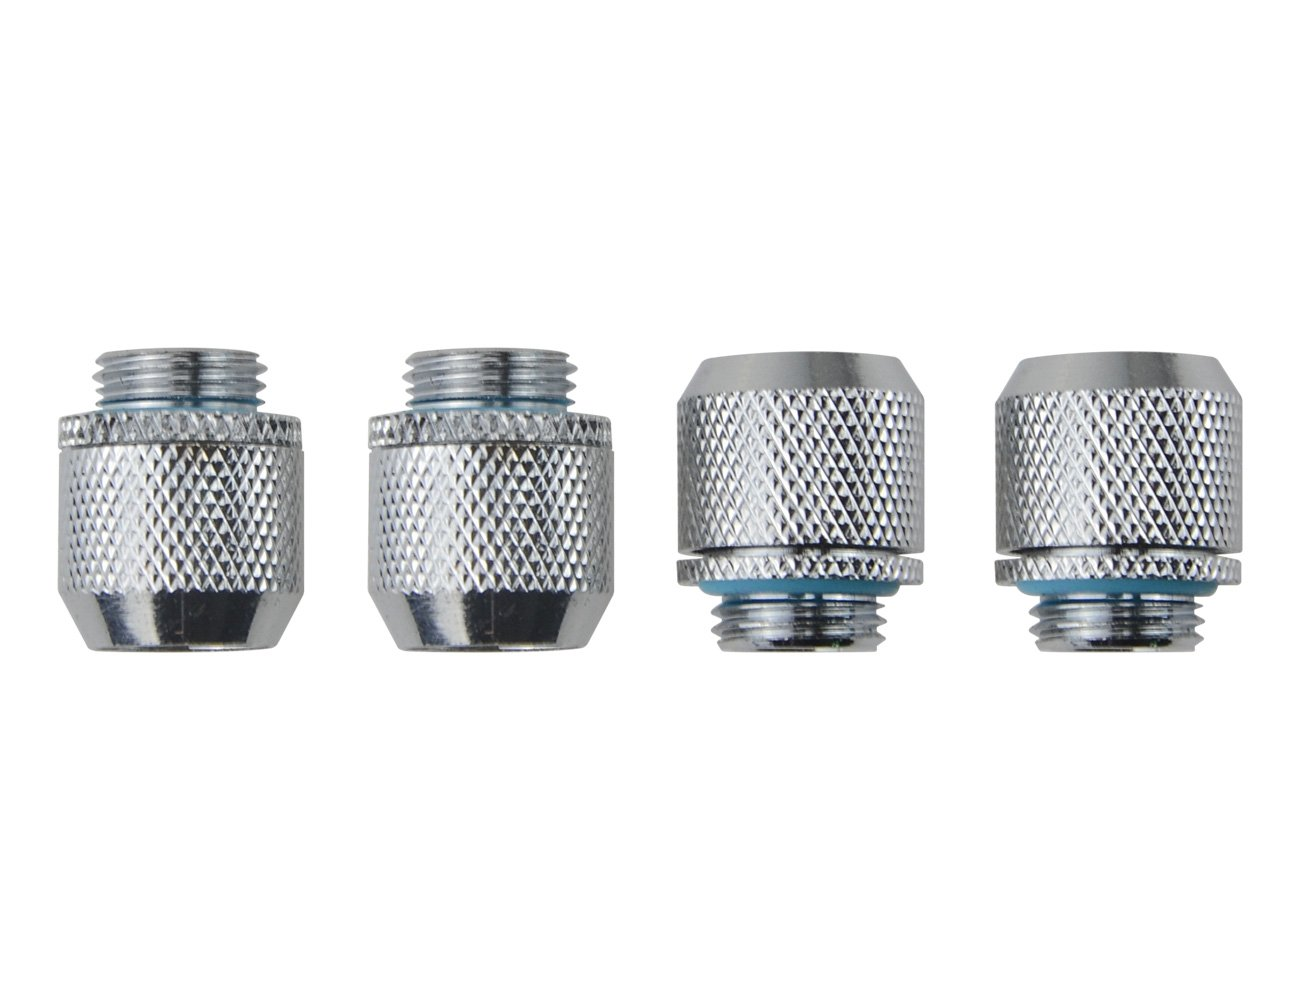 "BXQINLENX Silver Chrome G1/4"" to ID 3/8"" OD 1/2"" Soft TUBING Compression Fitting for Computer Water Cooling System Through Joint Straight Joint(4 PCS)"